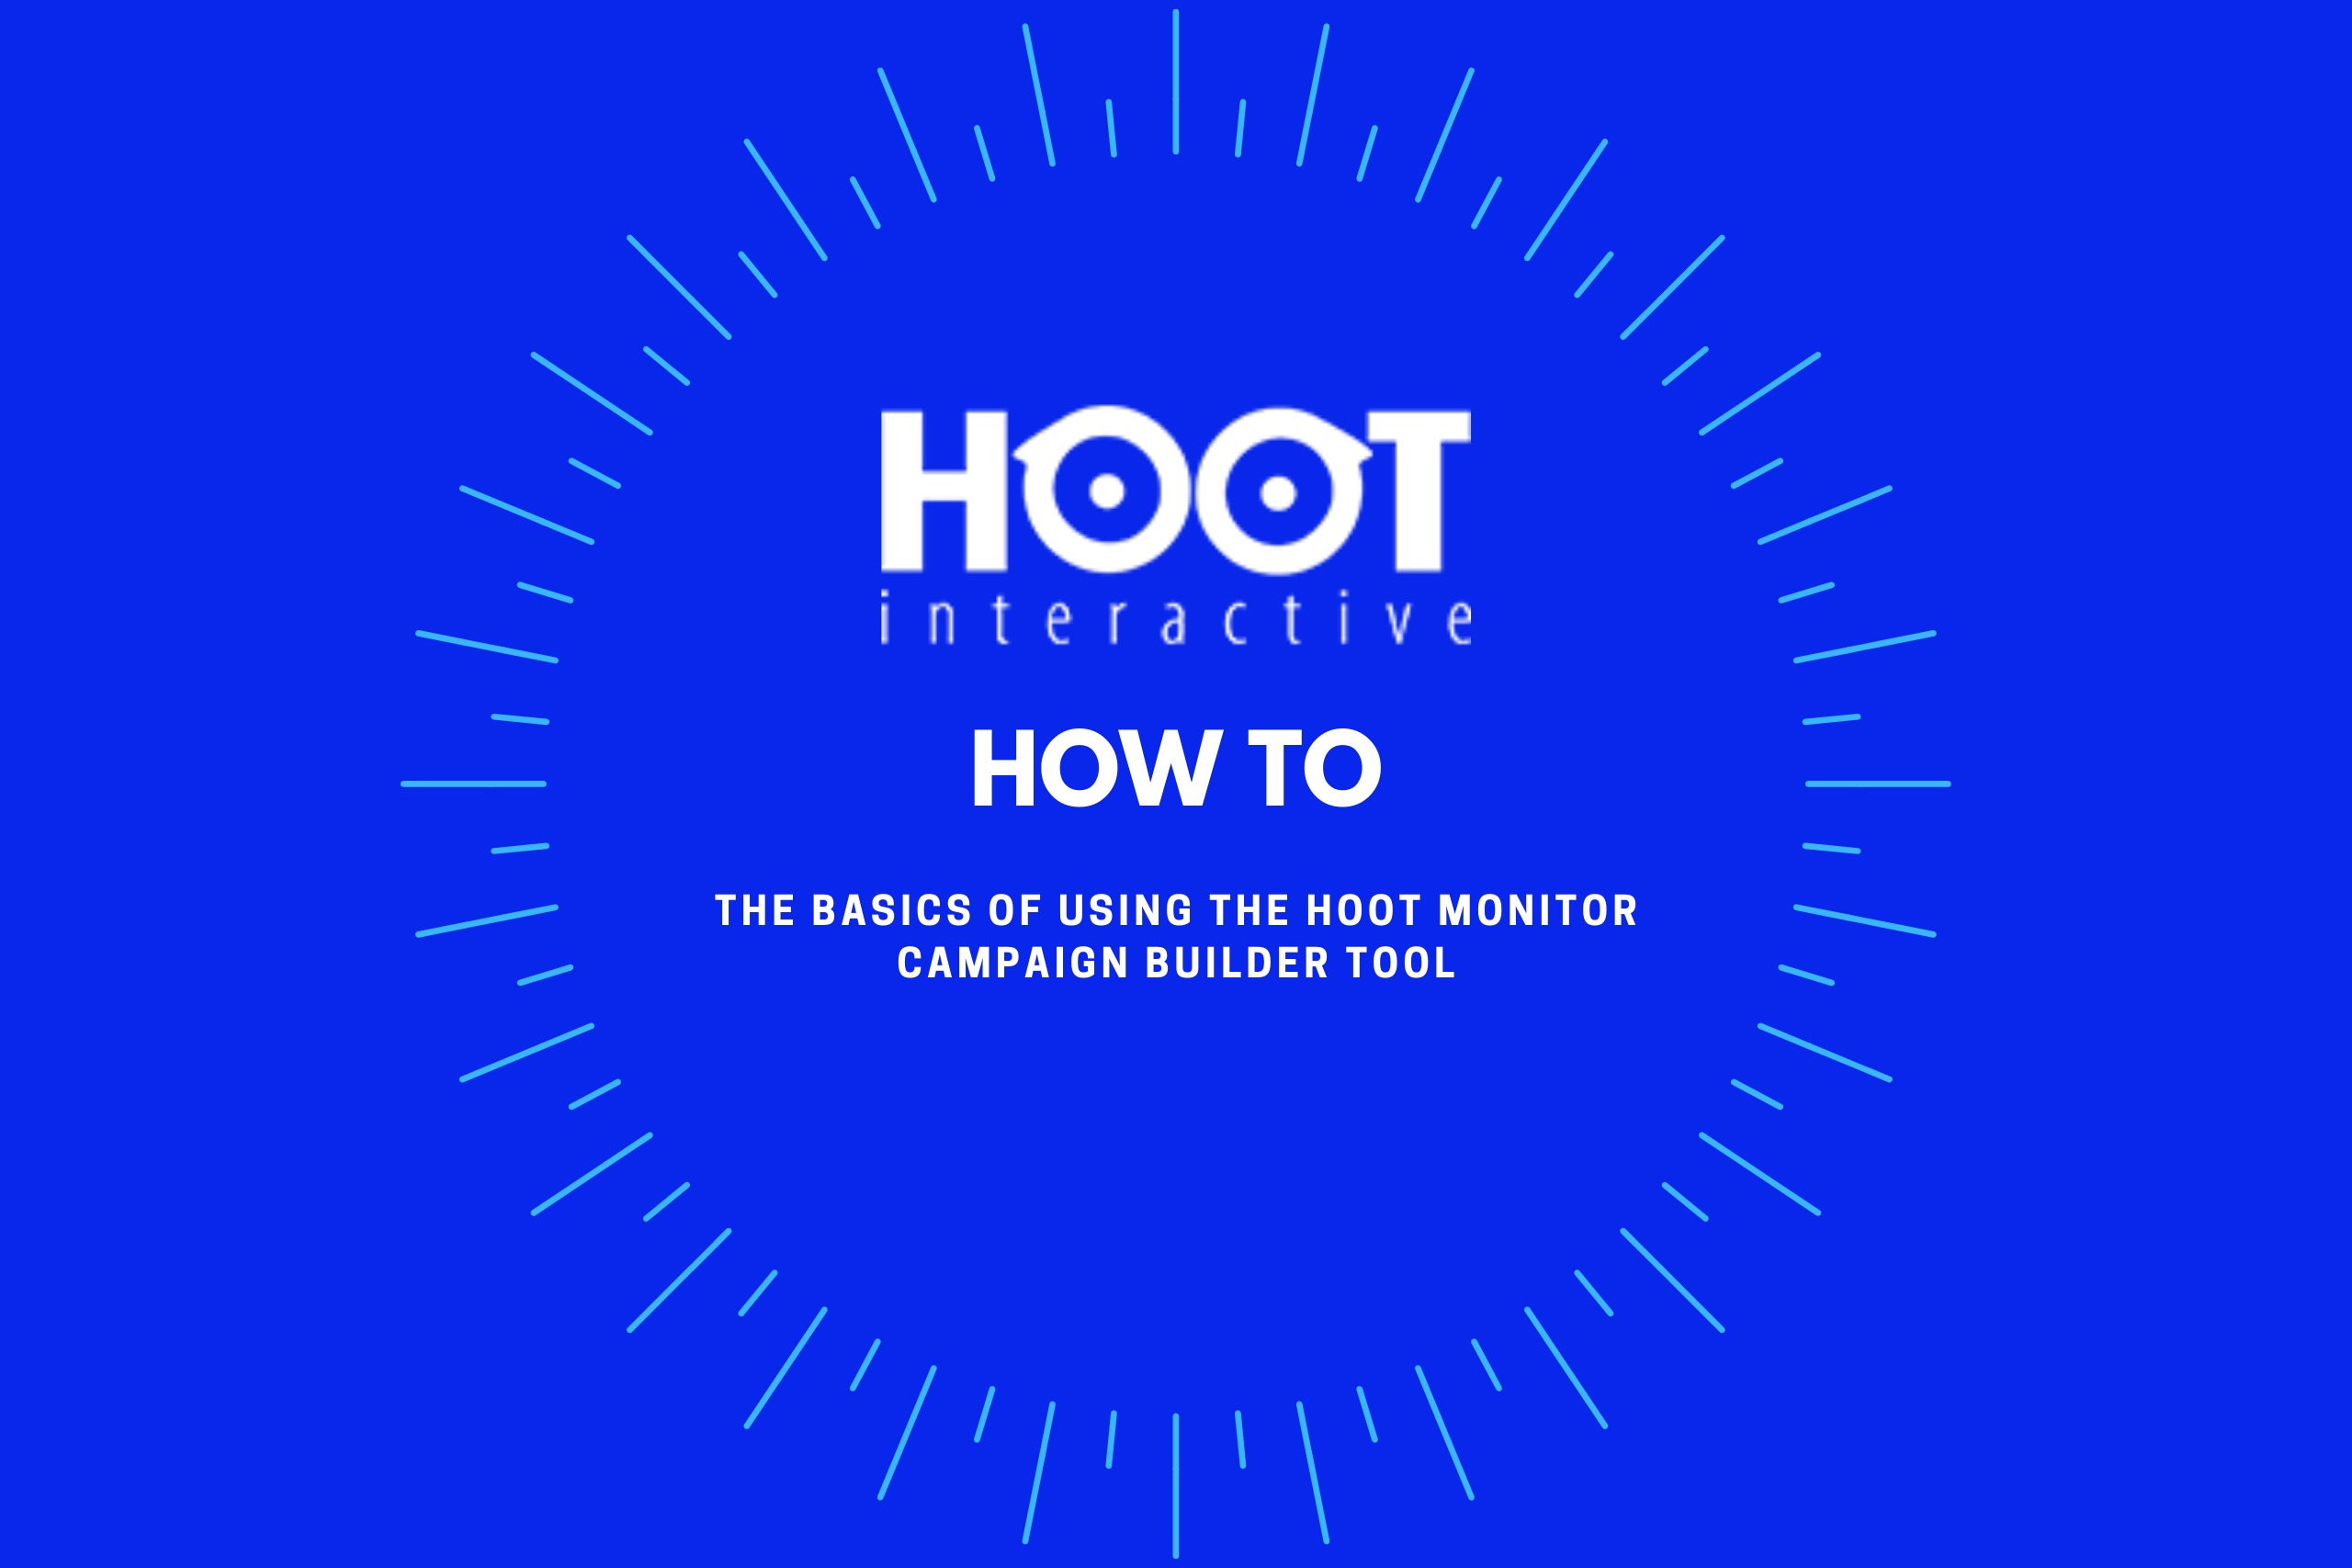 Hoot How to - basics of using the hoot monitor campaign builder tool